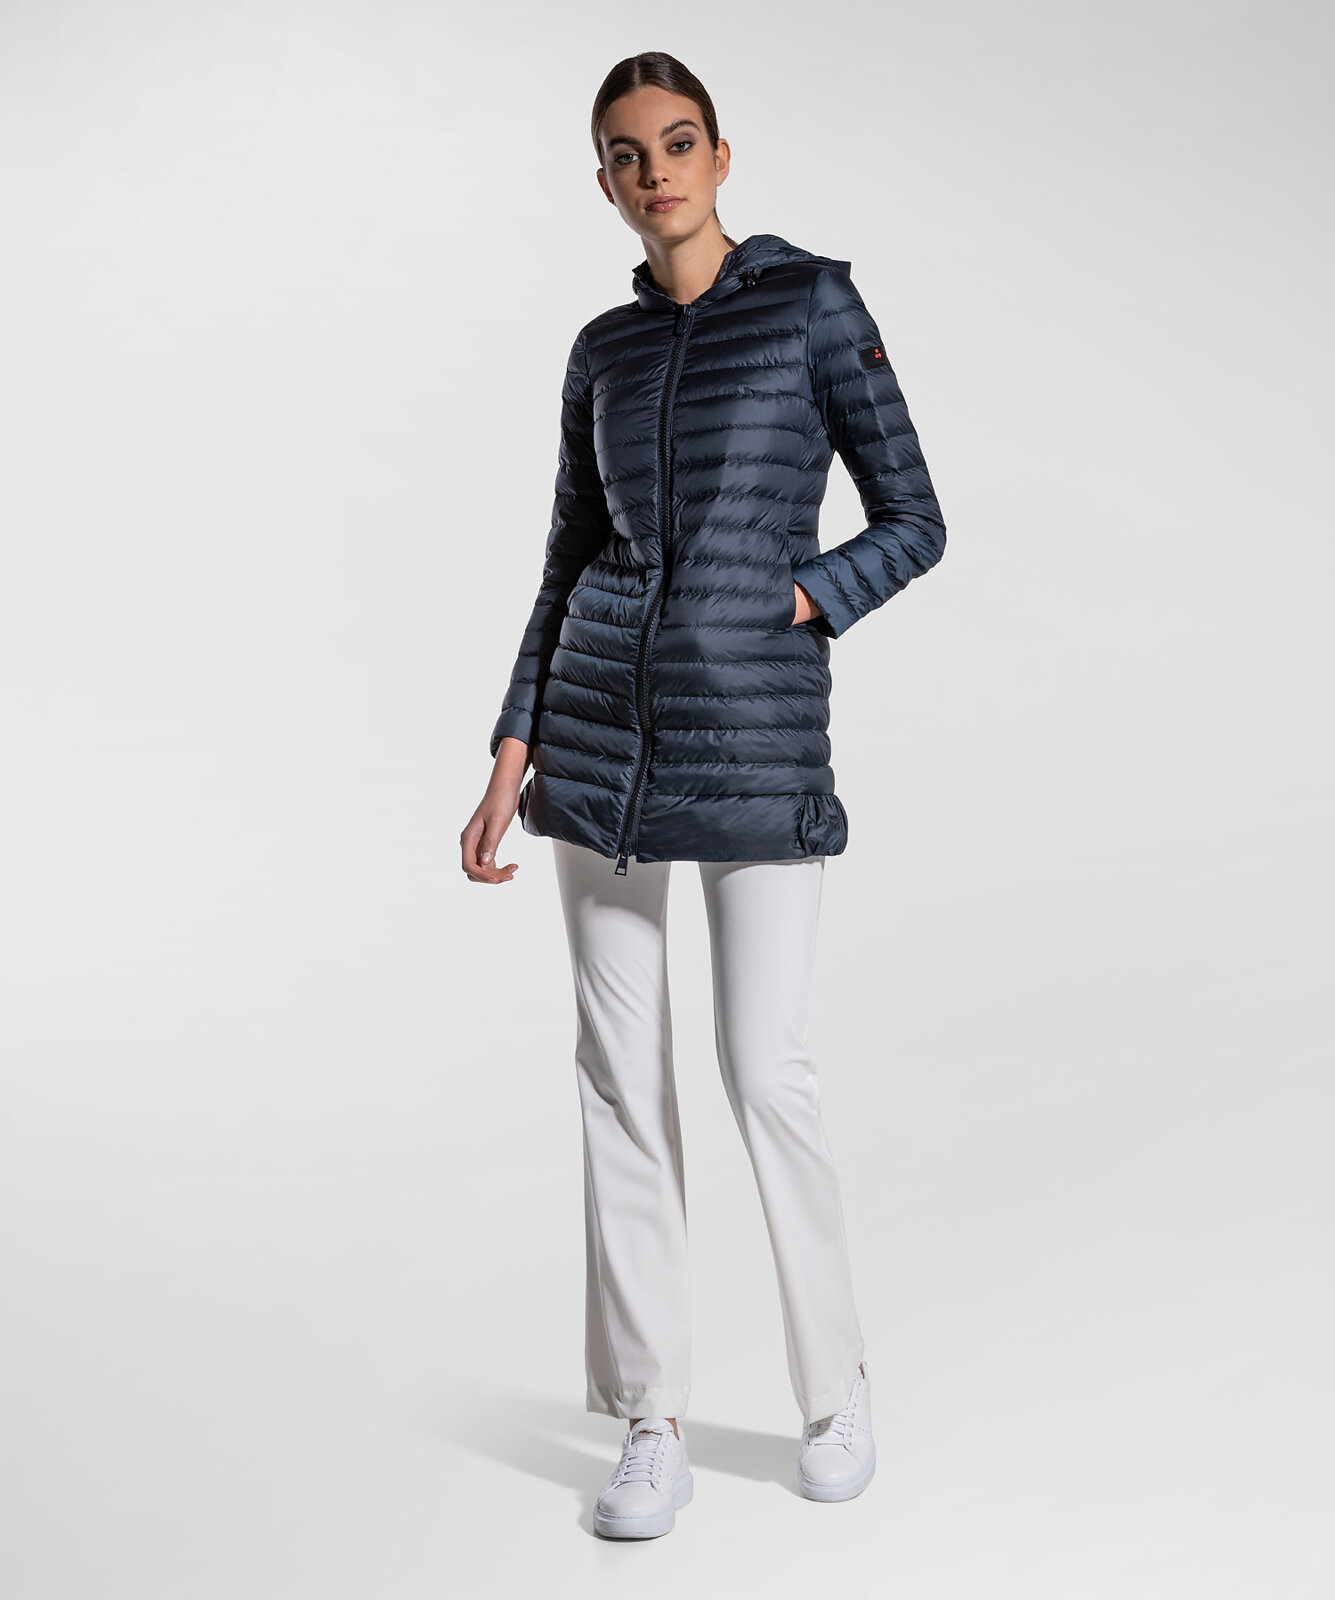 Super Light And Comfortable Long Down Jacket - Peuterey